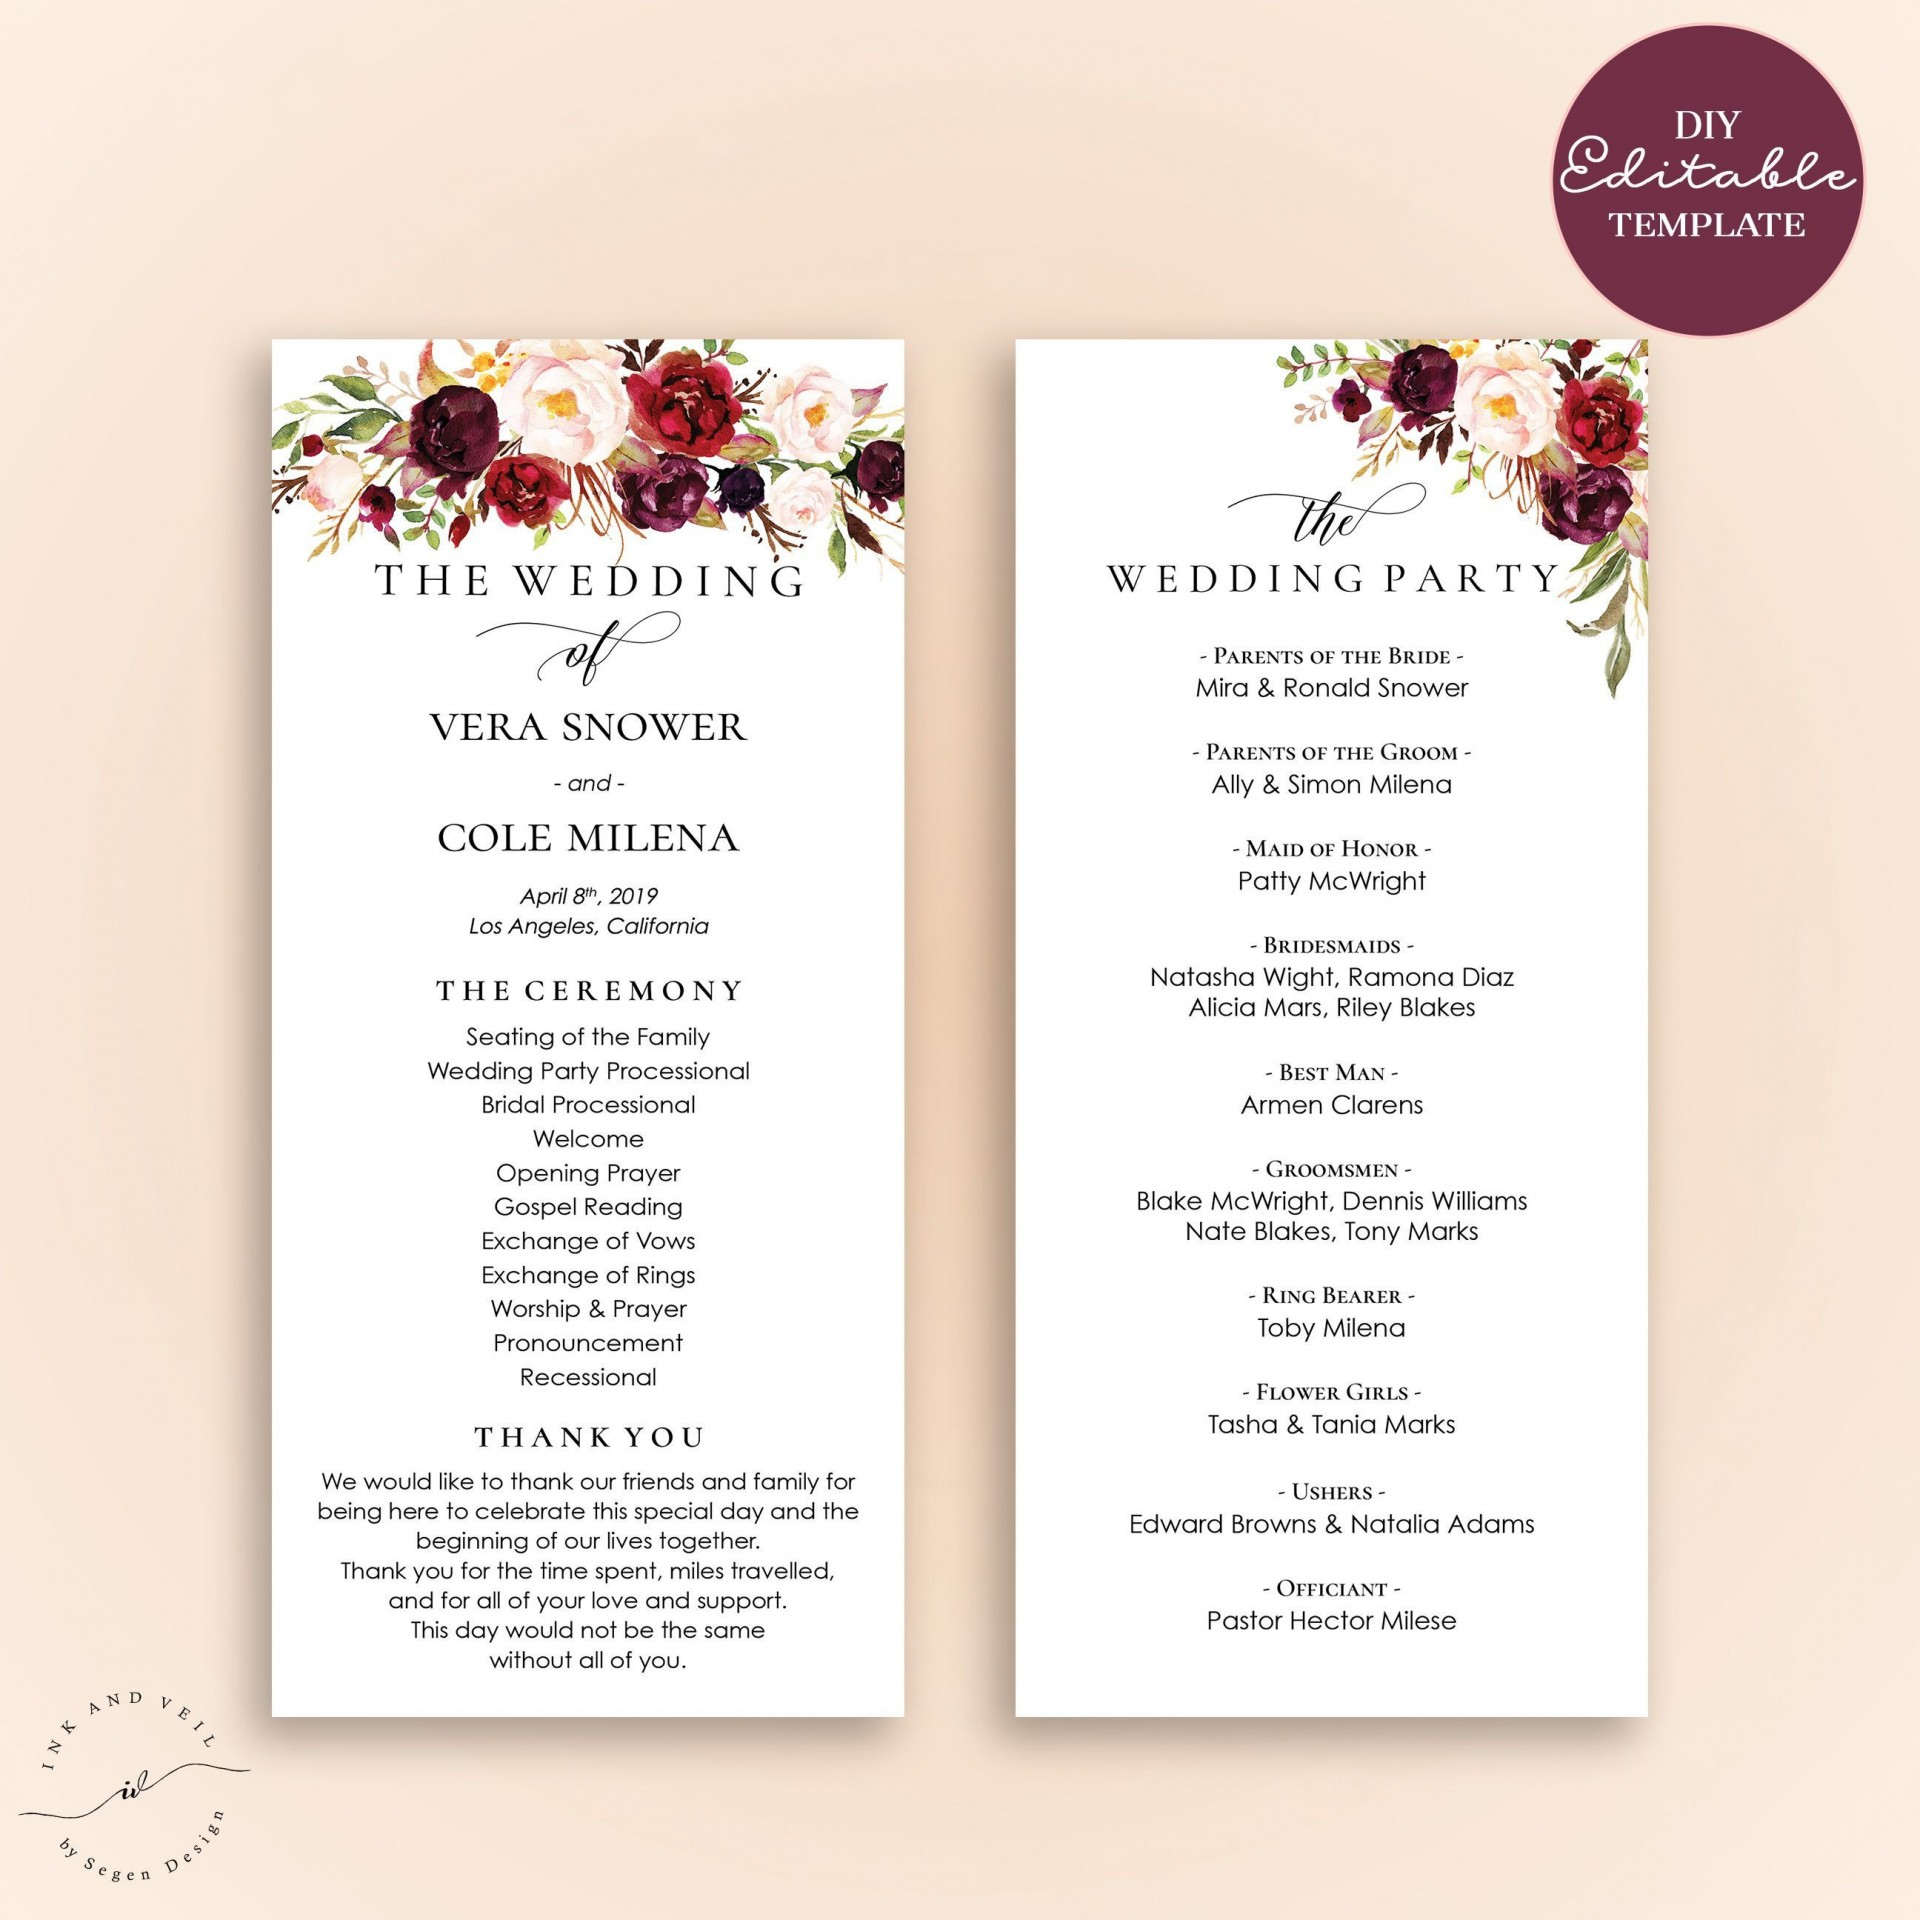 005 Formidable Wedding Order Of Service Template Free Download Idea  Downloadable That Can Be Printed1920